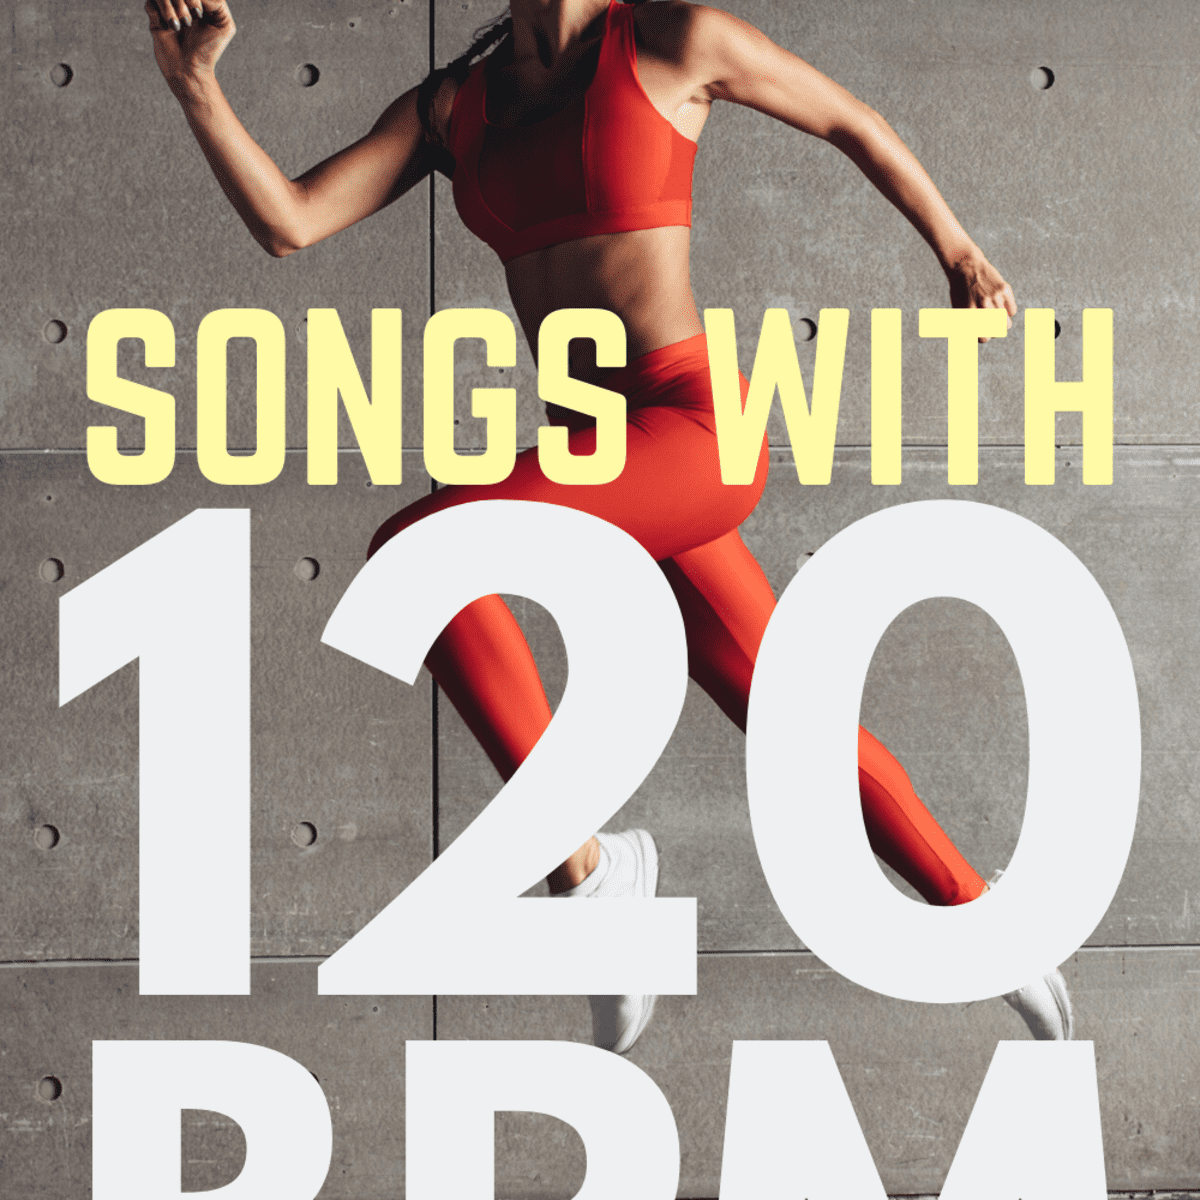 Songs With 120 Bpm Must Haves In Your Running And Workout Playlist Spinditty Music